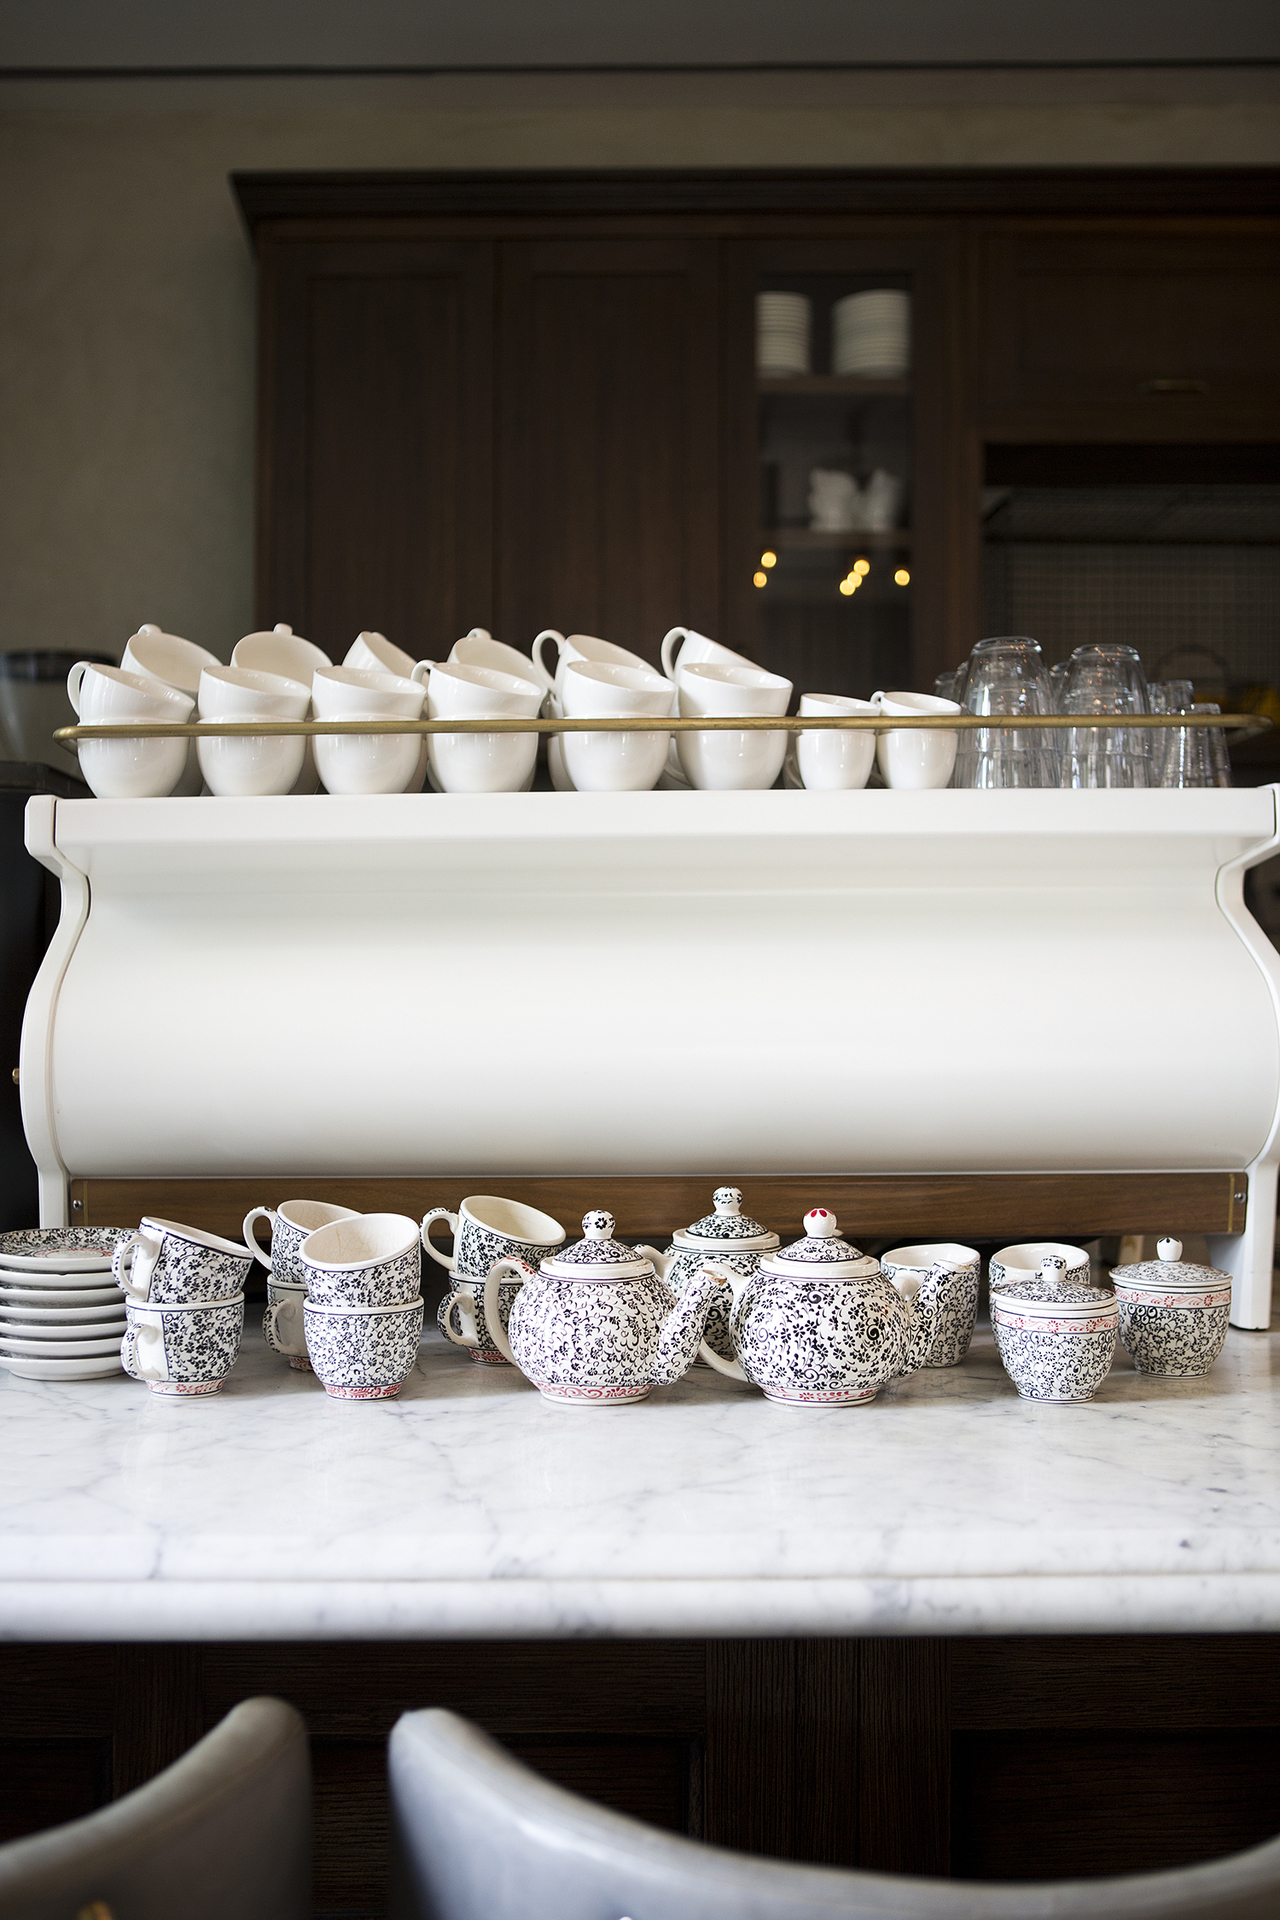 A coffee machine with stacks of patterned teacups